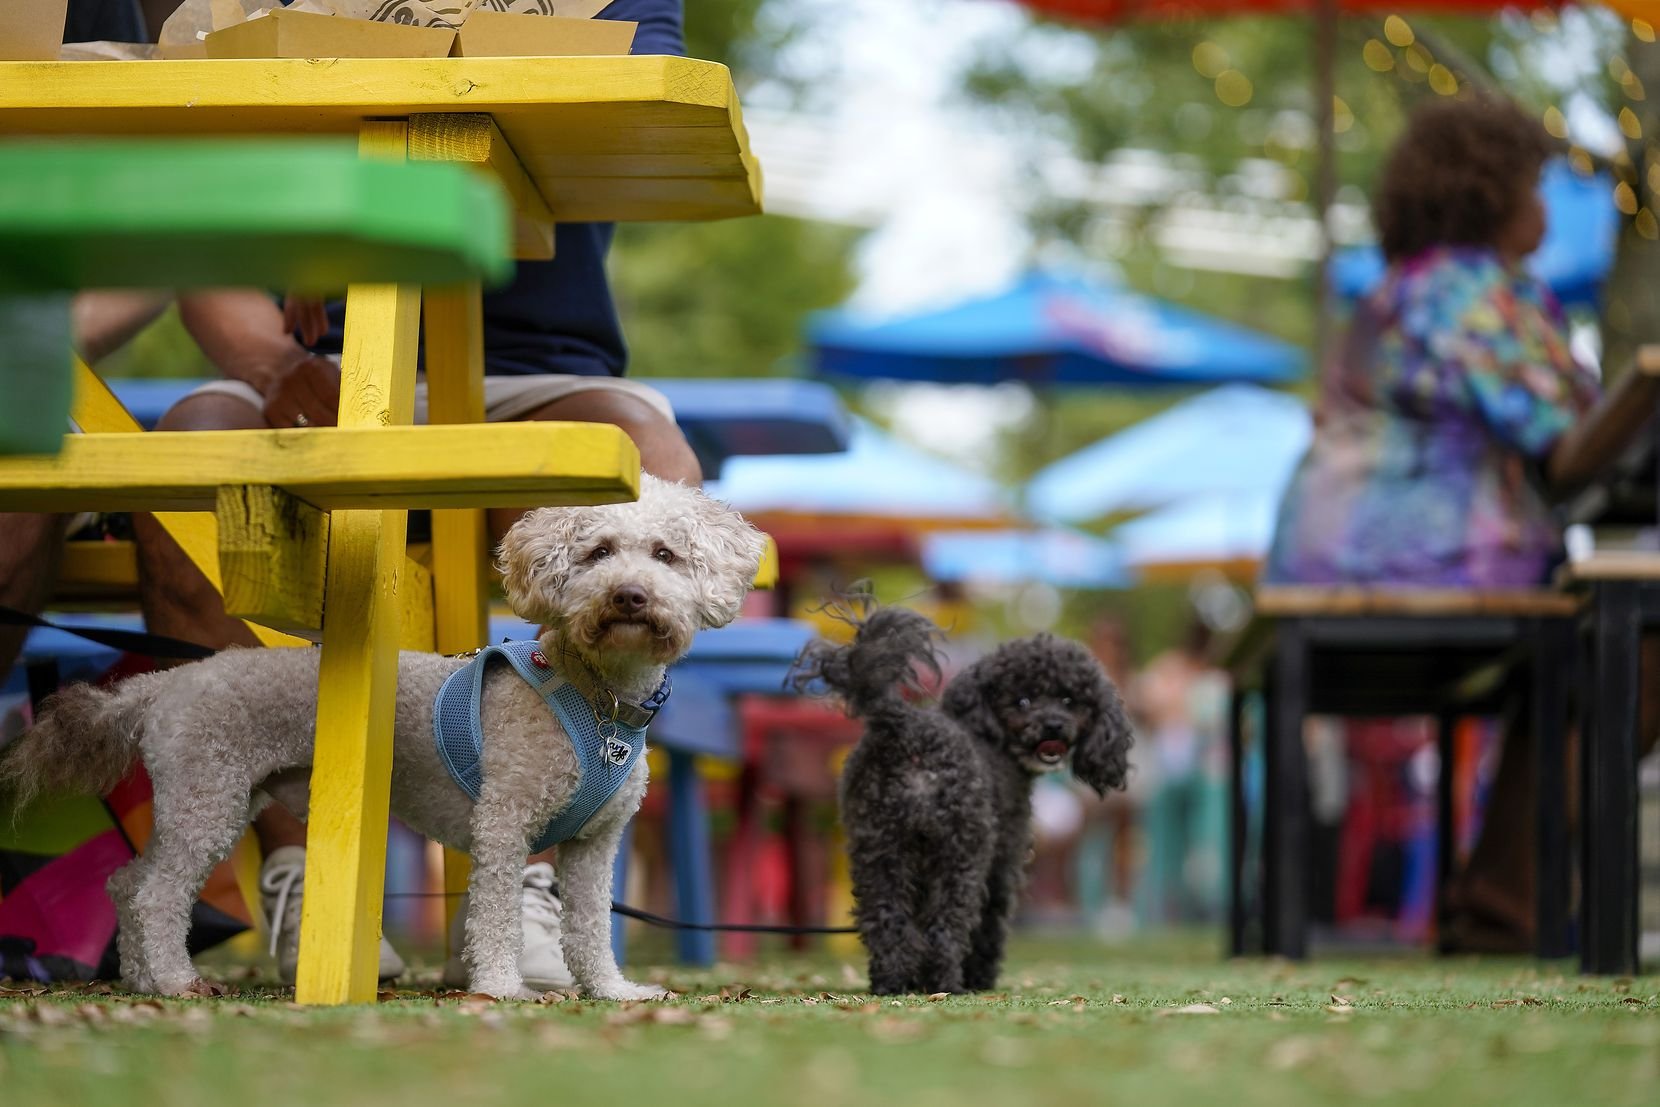 Dogs are allowed at the ArtPark in West Dallas.